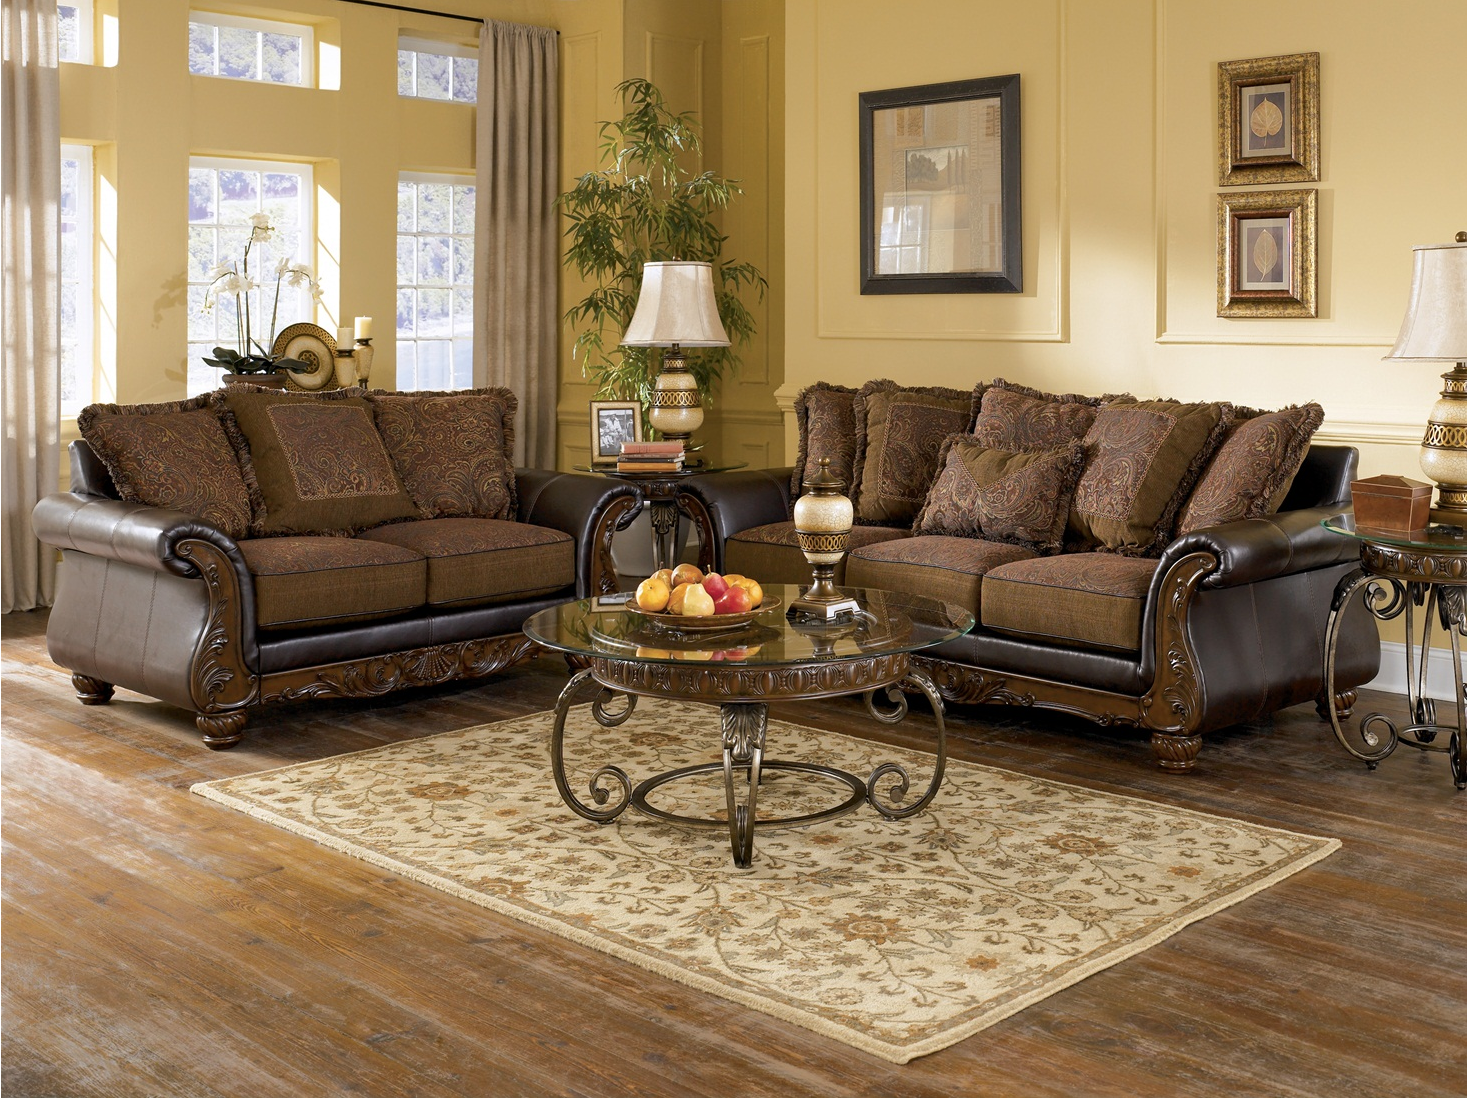 Wilmington traditional living room furniture set by ashley for Living room sets